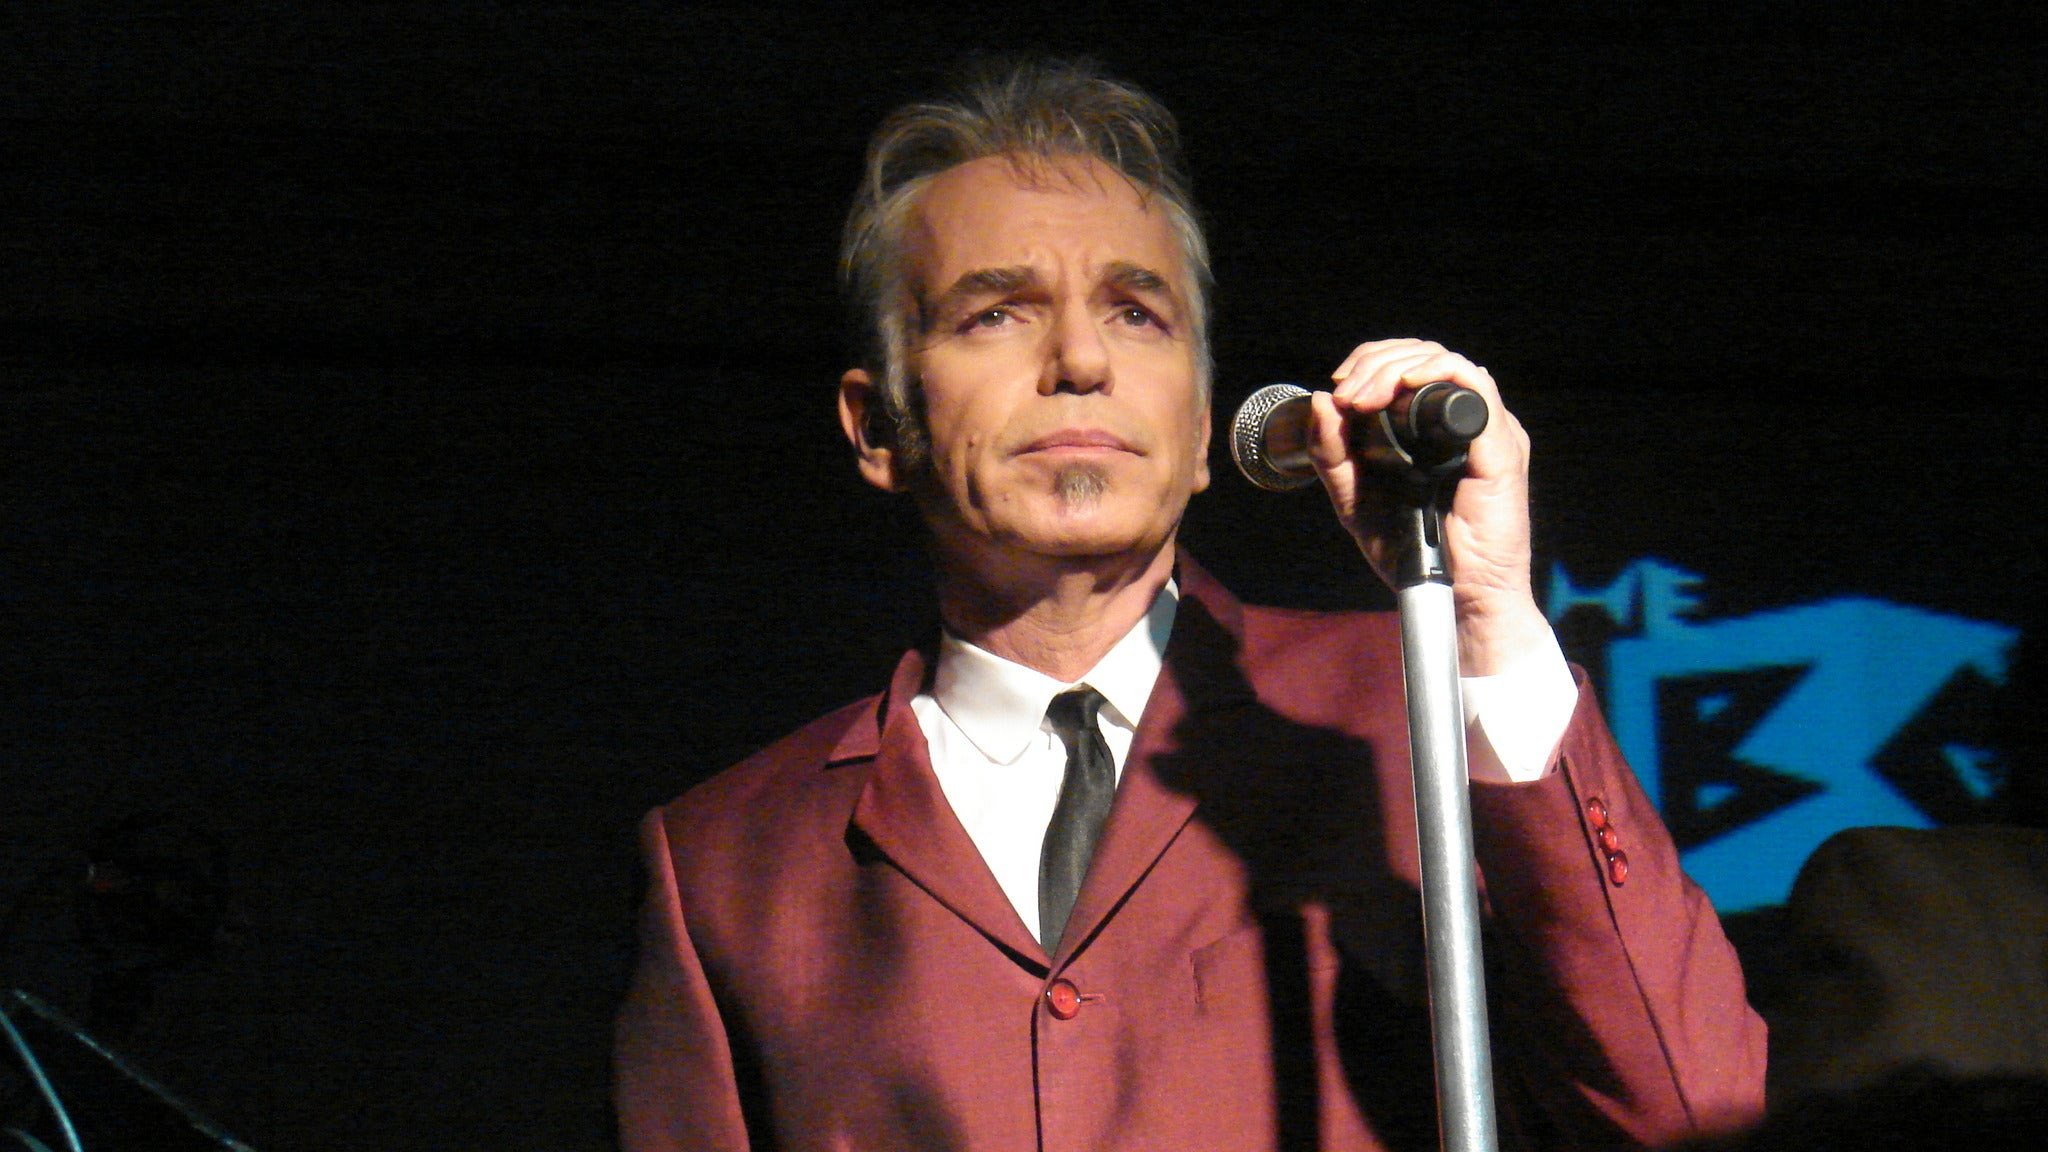 Billy Bob Thornton at The Ballroom at The Outer Space